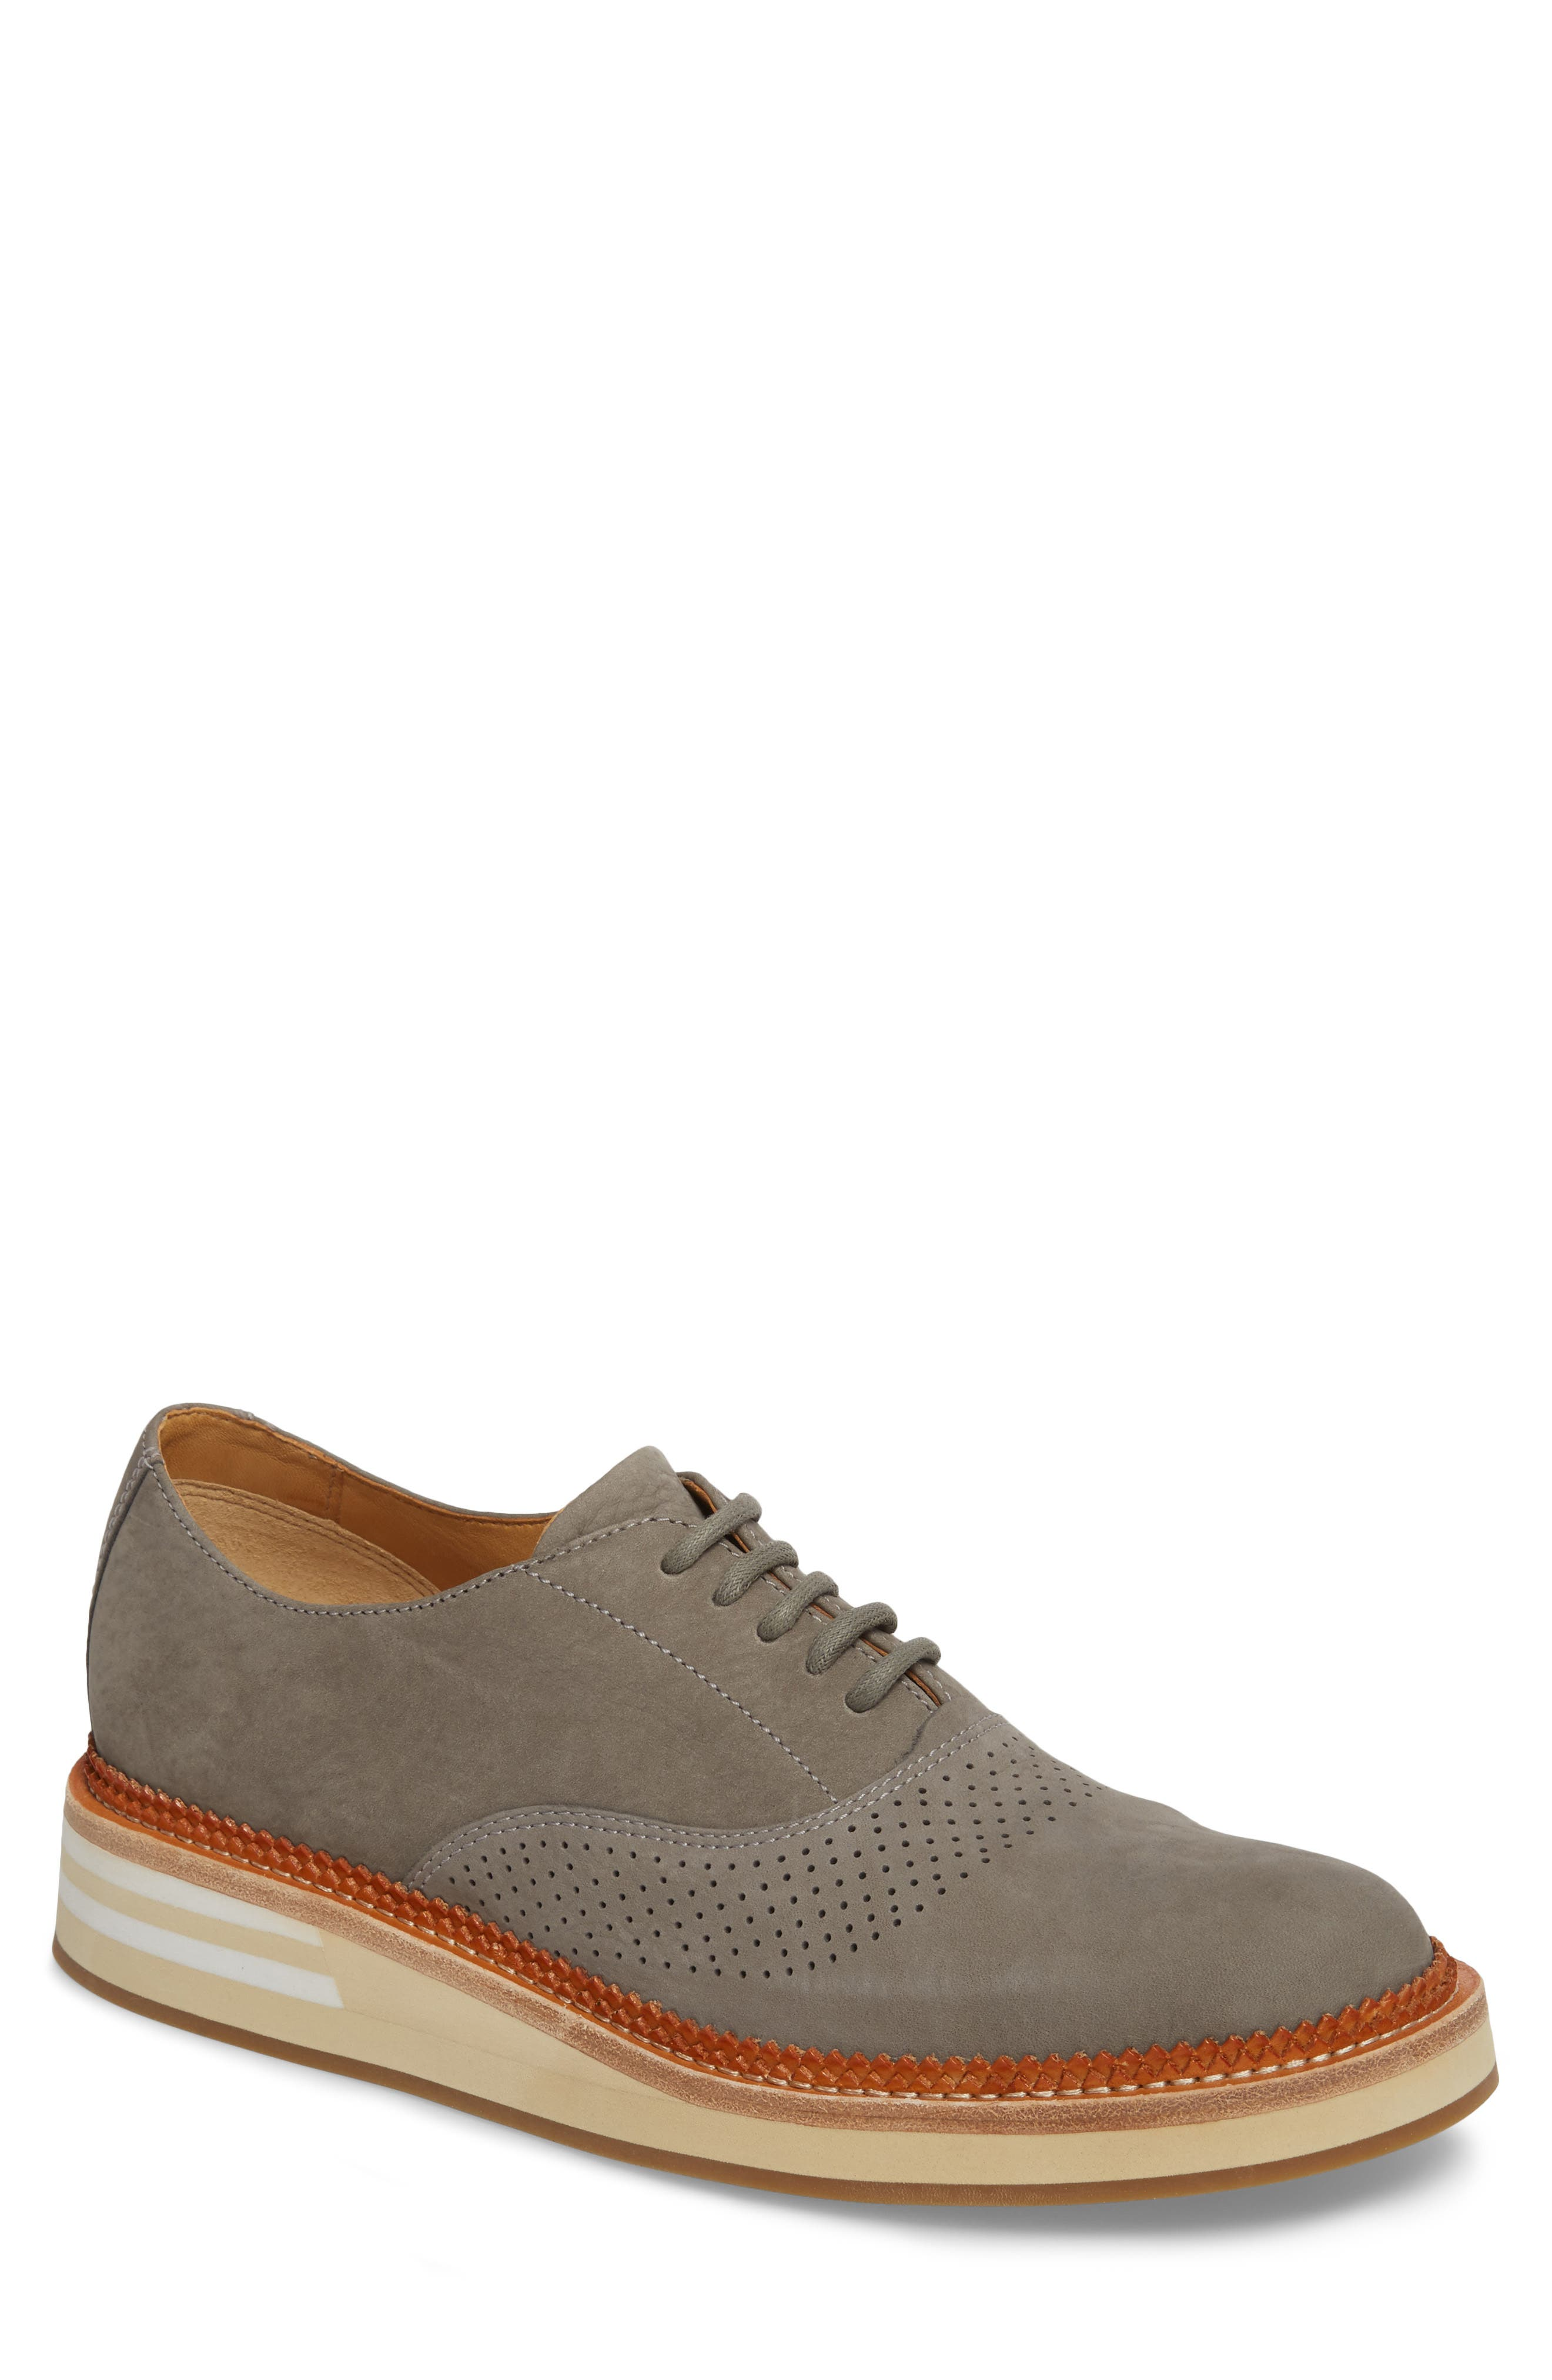 Sperry Men's Cloud Perforated Oxford GZUvOiV